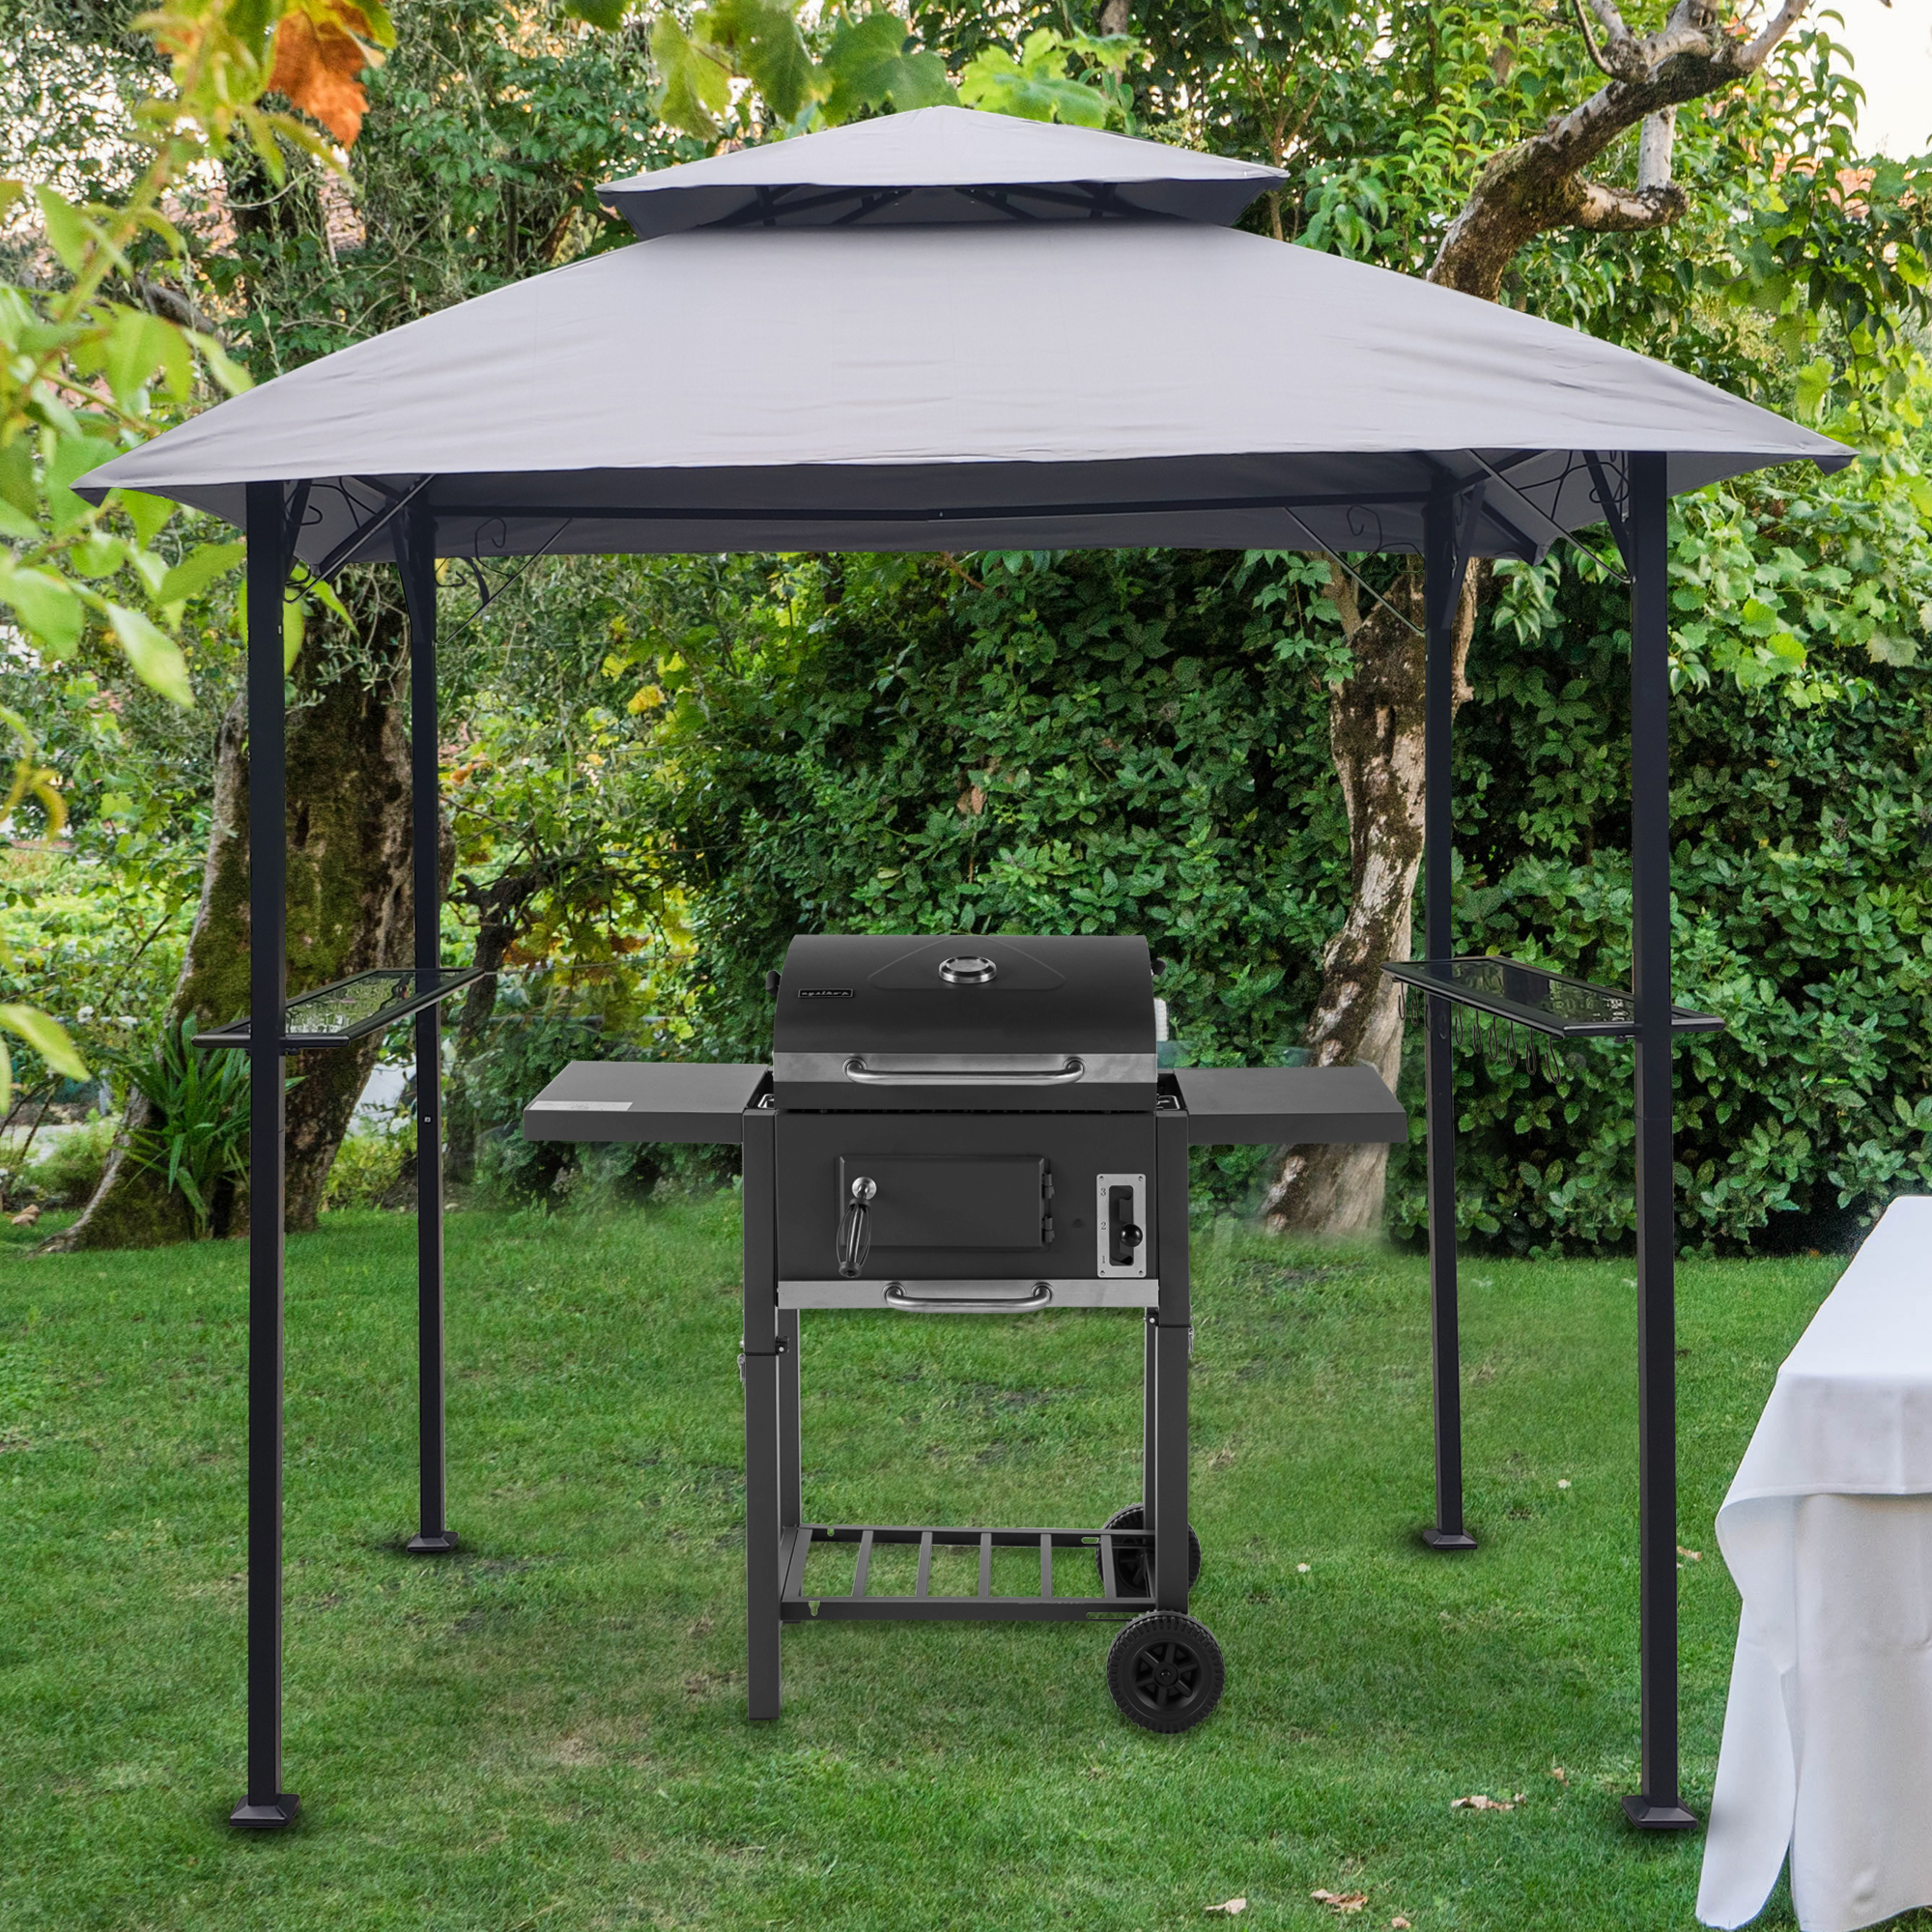 Outdoor Canopy Gazebo 8 X 5 Ft Grill Gazebo Hardtop For Backyard Patio Gazebo Clearance 2 Tier Barbecue Canopy Shelter Bbq Grill Tent With Bottle Opener Iron Mesh Shelves And Hooks B1847